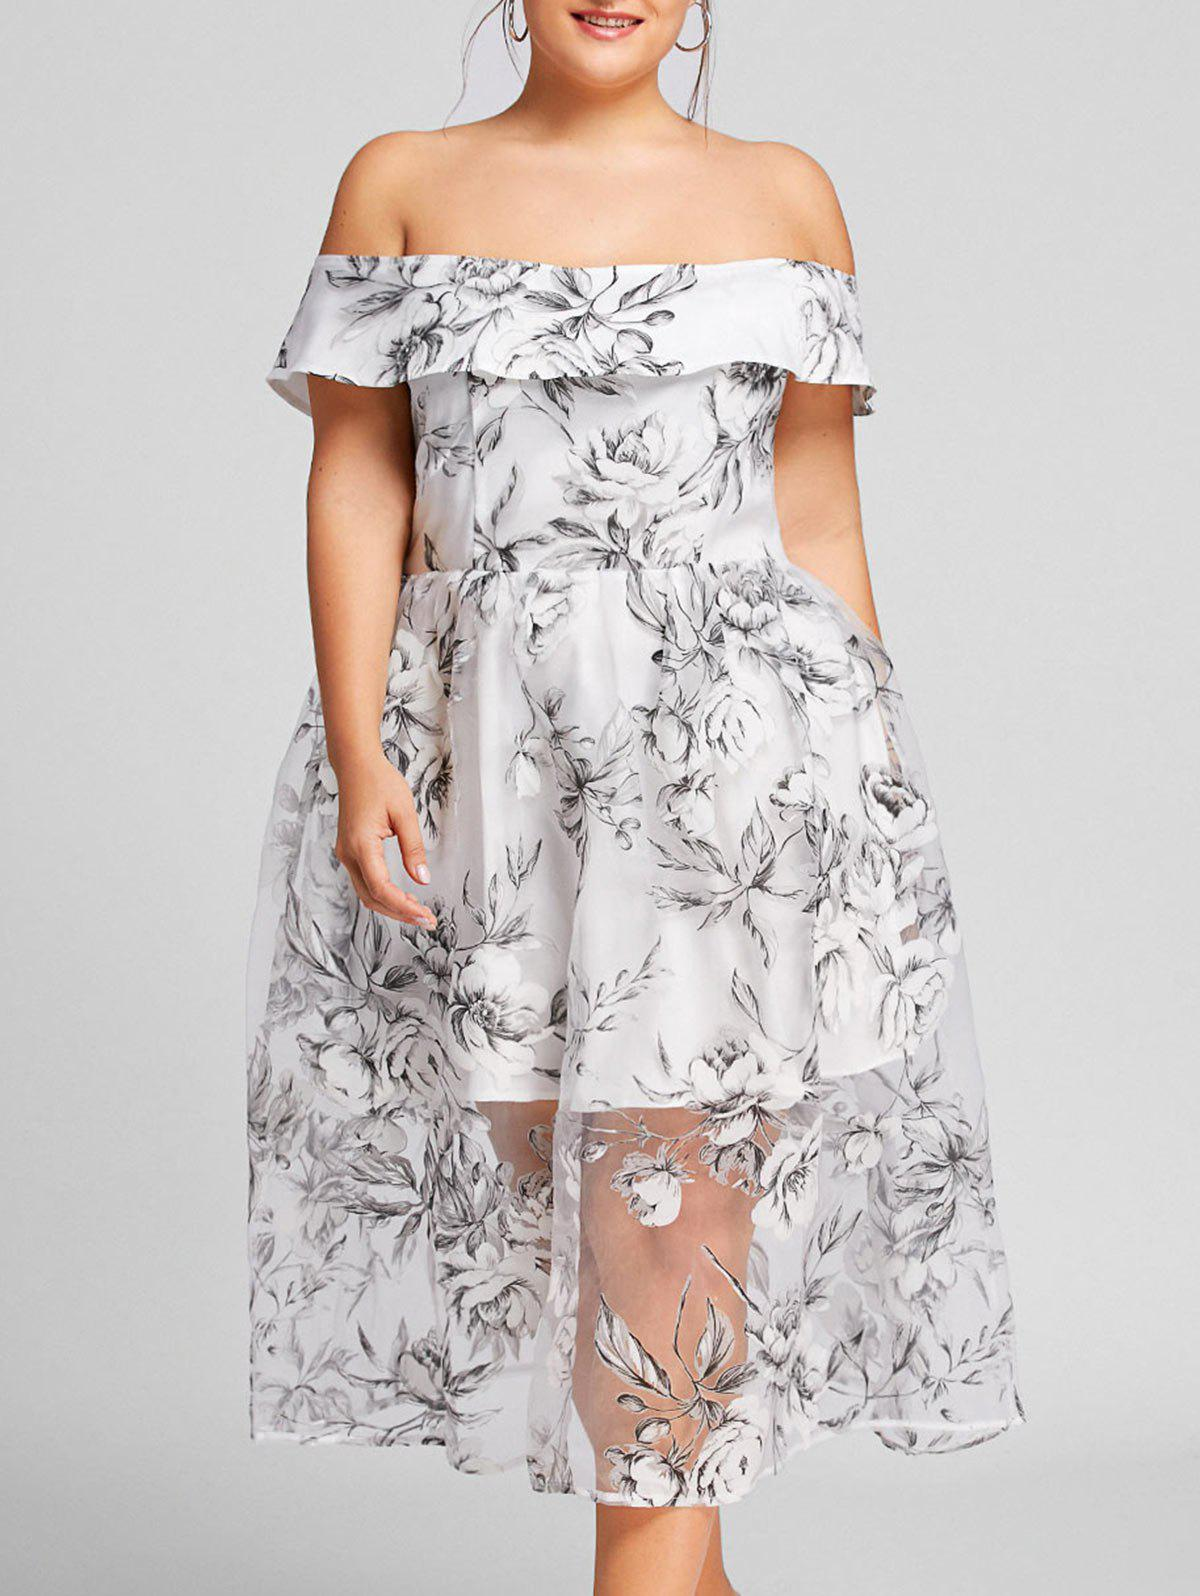 Floral Off The Shoulder Plus Size Tulle DressWOMEN<br><br>Size: 4XL; Color: GRAY; Style: Casual; Material: Polyester; Silhouette: A-Line; Dresses Length: Mid-Calf; Neckline: Off The Shoulder; Sleeve Length: Short Sleeves; Pattern Type: Floral; With Belt: No; Season: Fall,Spring,Summer,Winter; Weight: 0.2950kg; Package Contents: 1 x Dress;